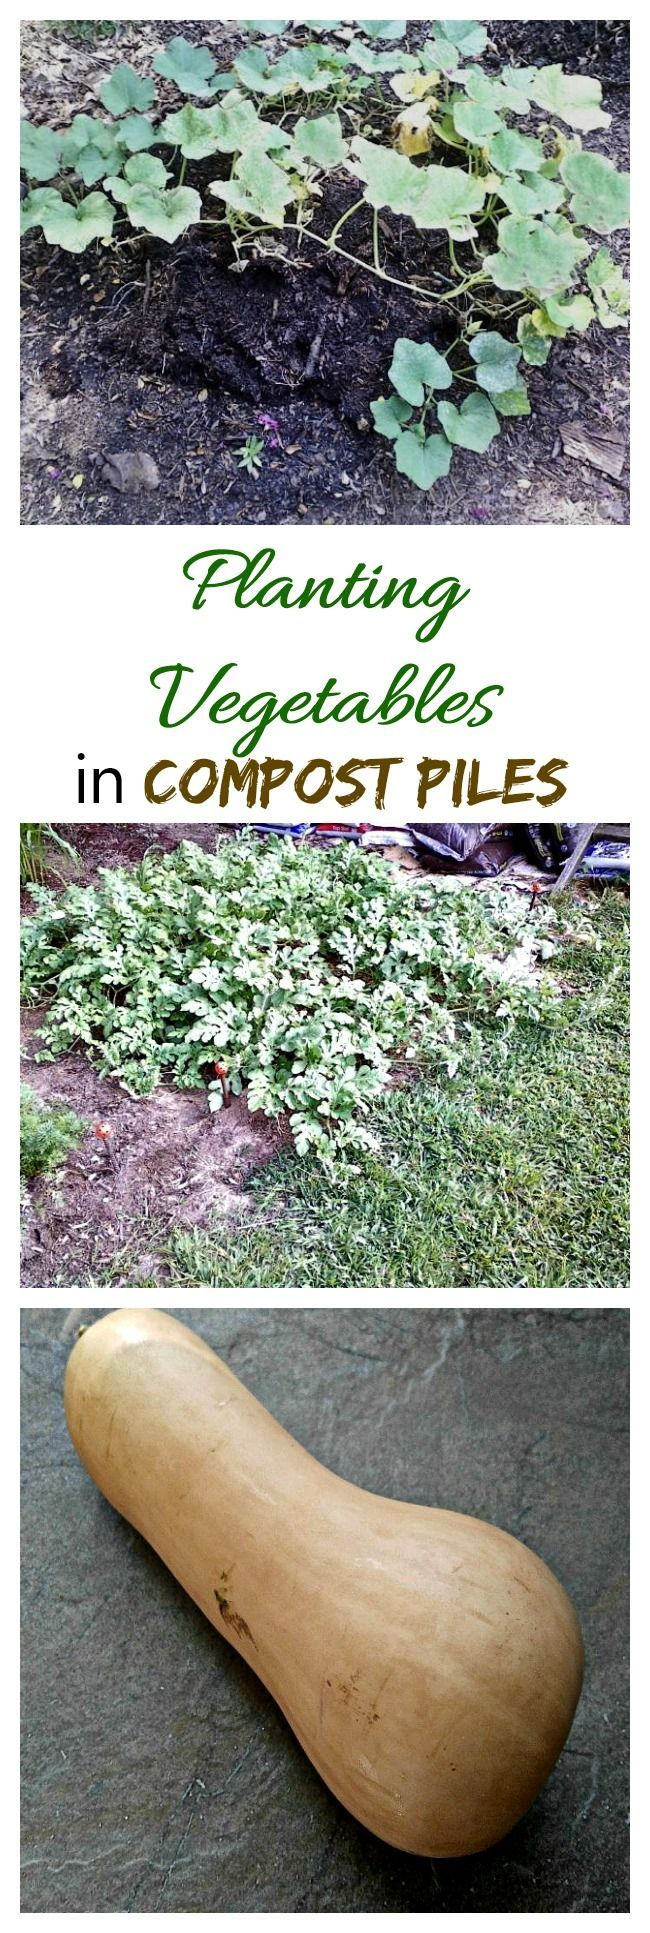 For really large vegetables that don't need fertilizing, try planting in compost piles. I experimented with this last year with great results. #composting #vegetablegardening